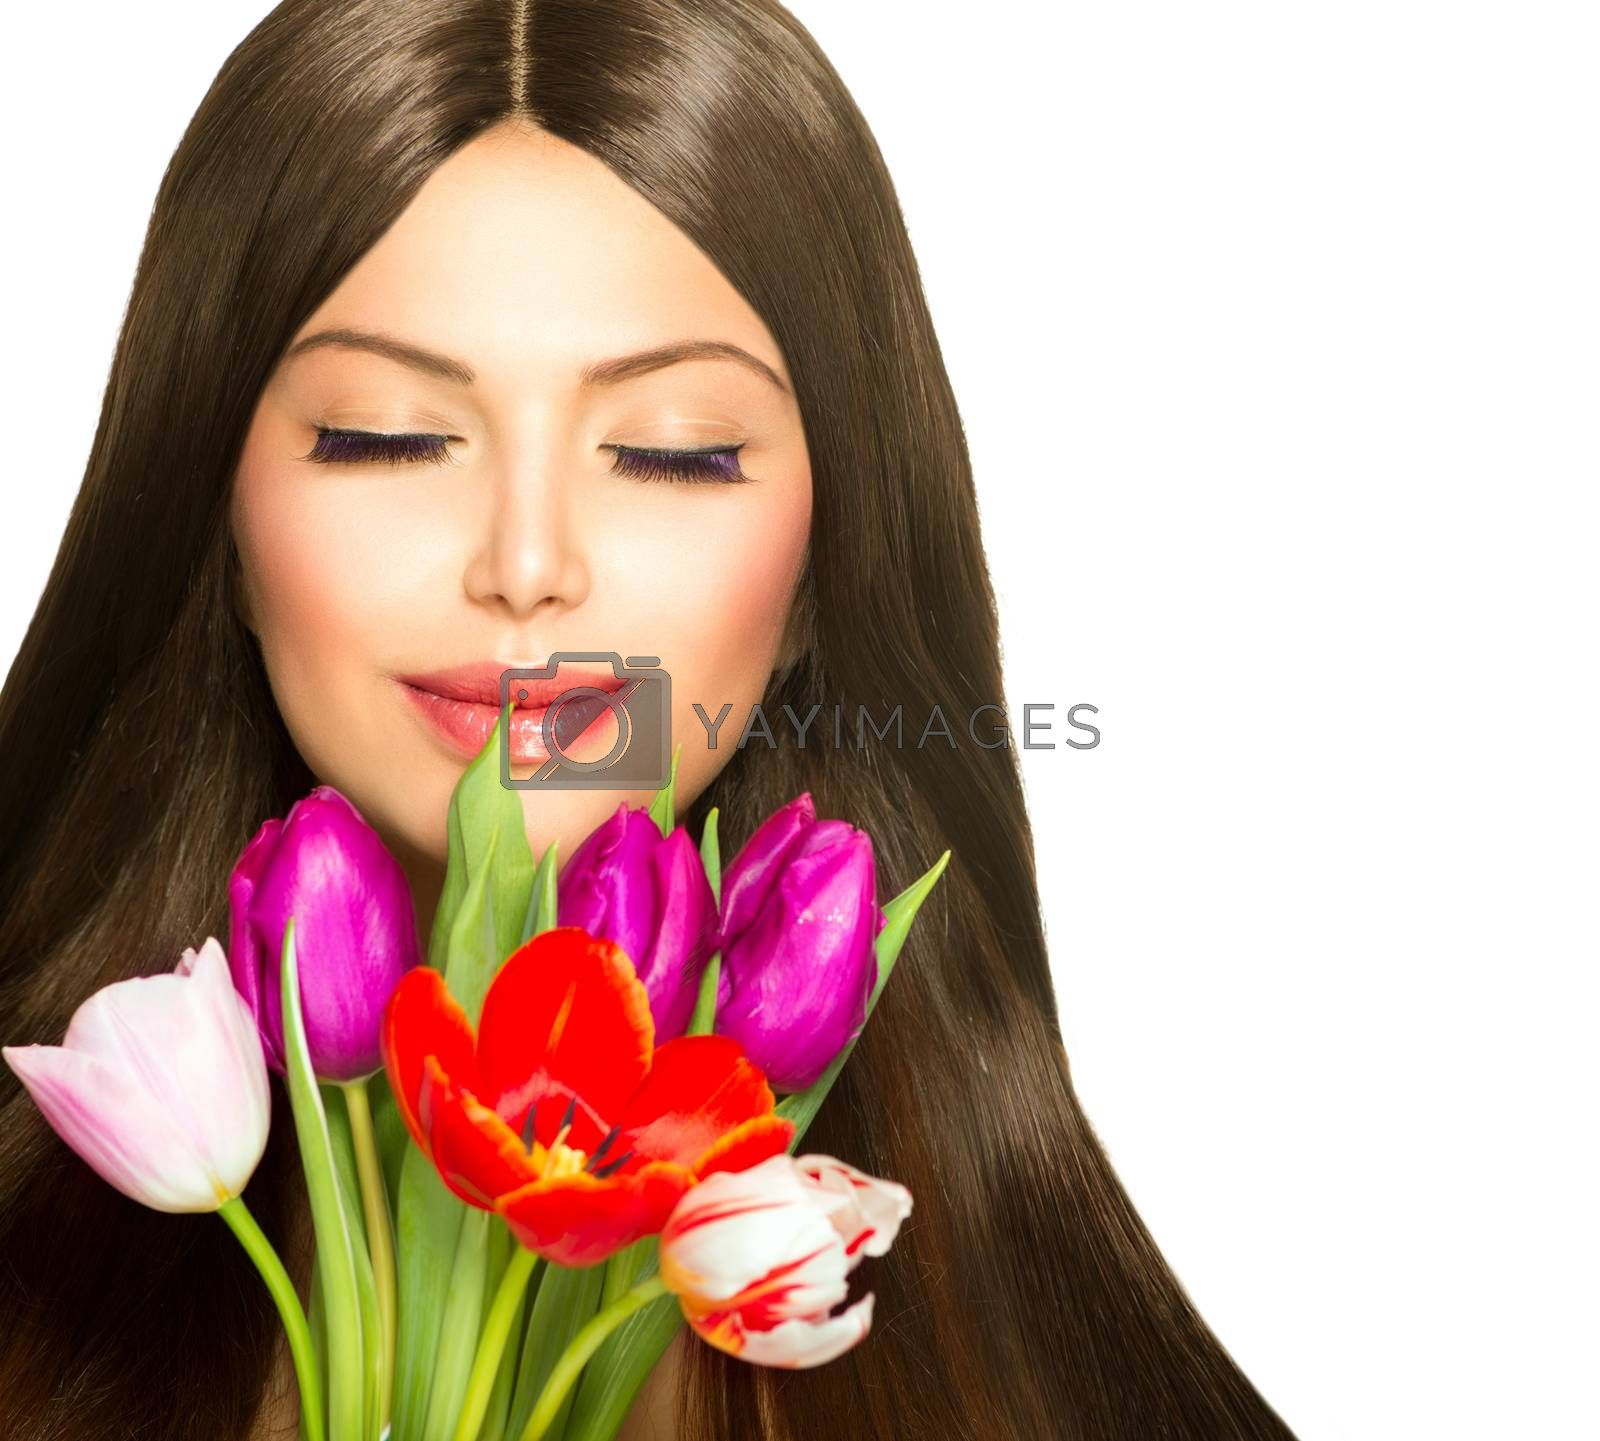 Beauty Woman with Spring Bouquet of Tulip Flowers by SubbotinaA